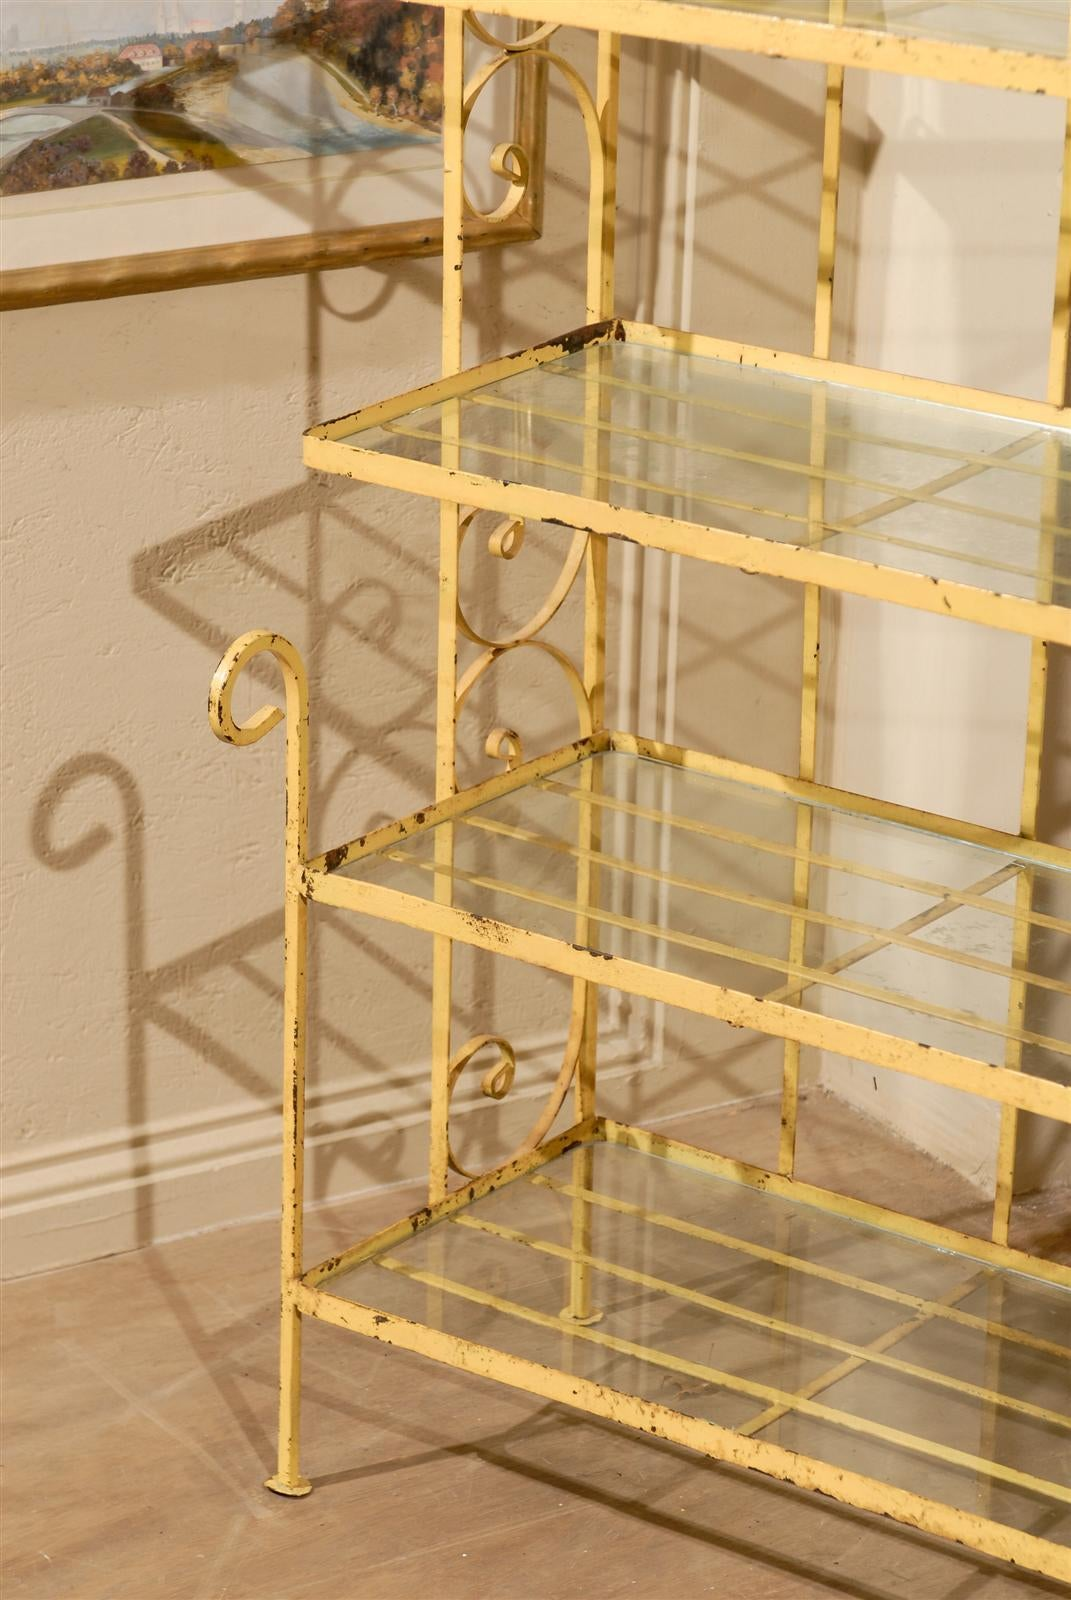 Petite Midcentury Yellow Bakers Rack For Sale at 1stdibs